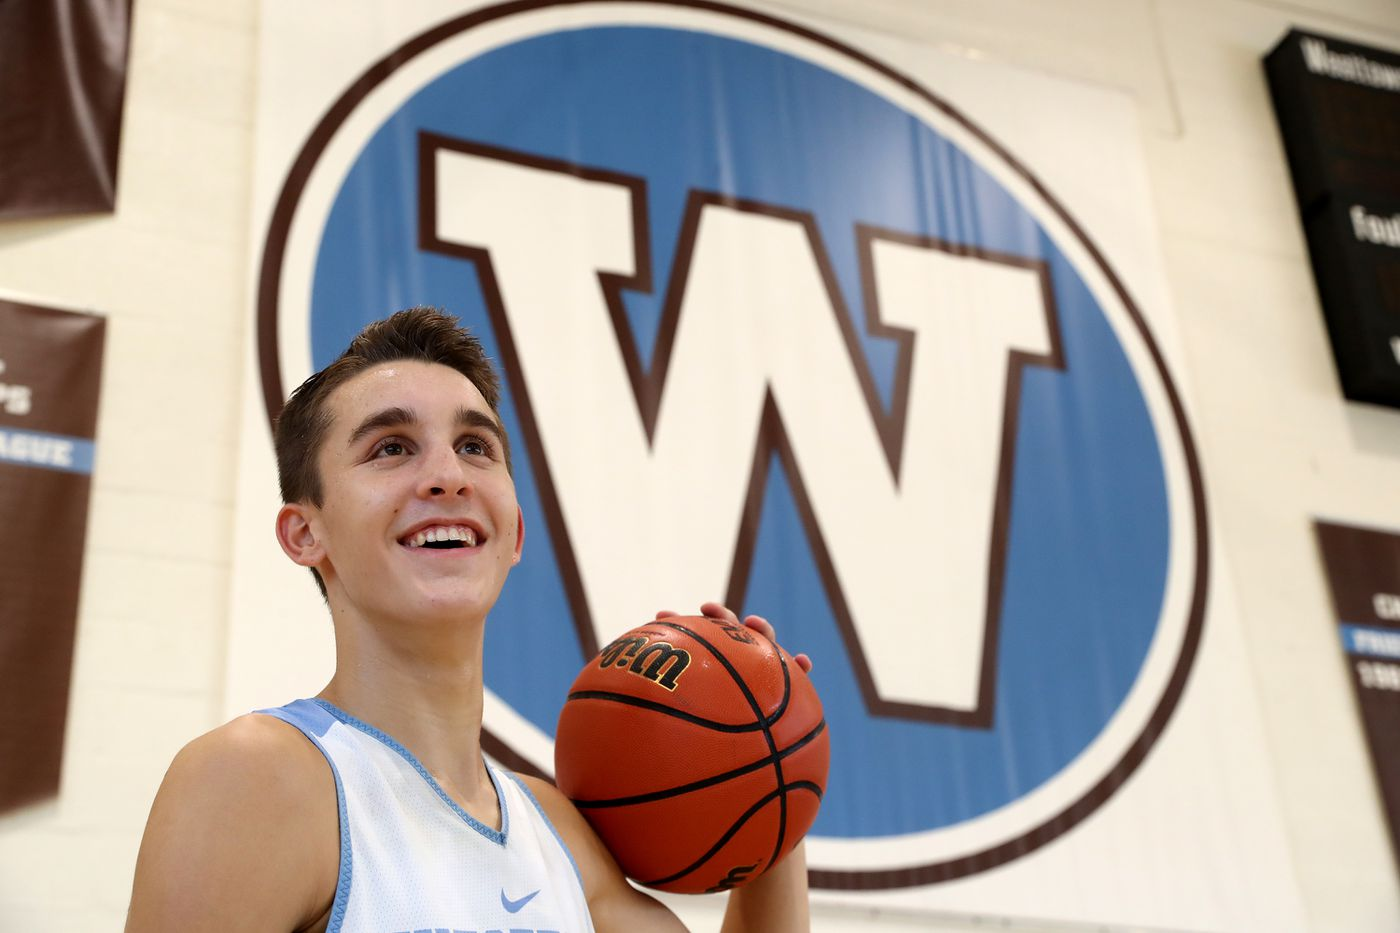 Basketball: Westtown guard John Camden piling up scholarship offers